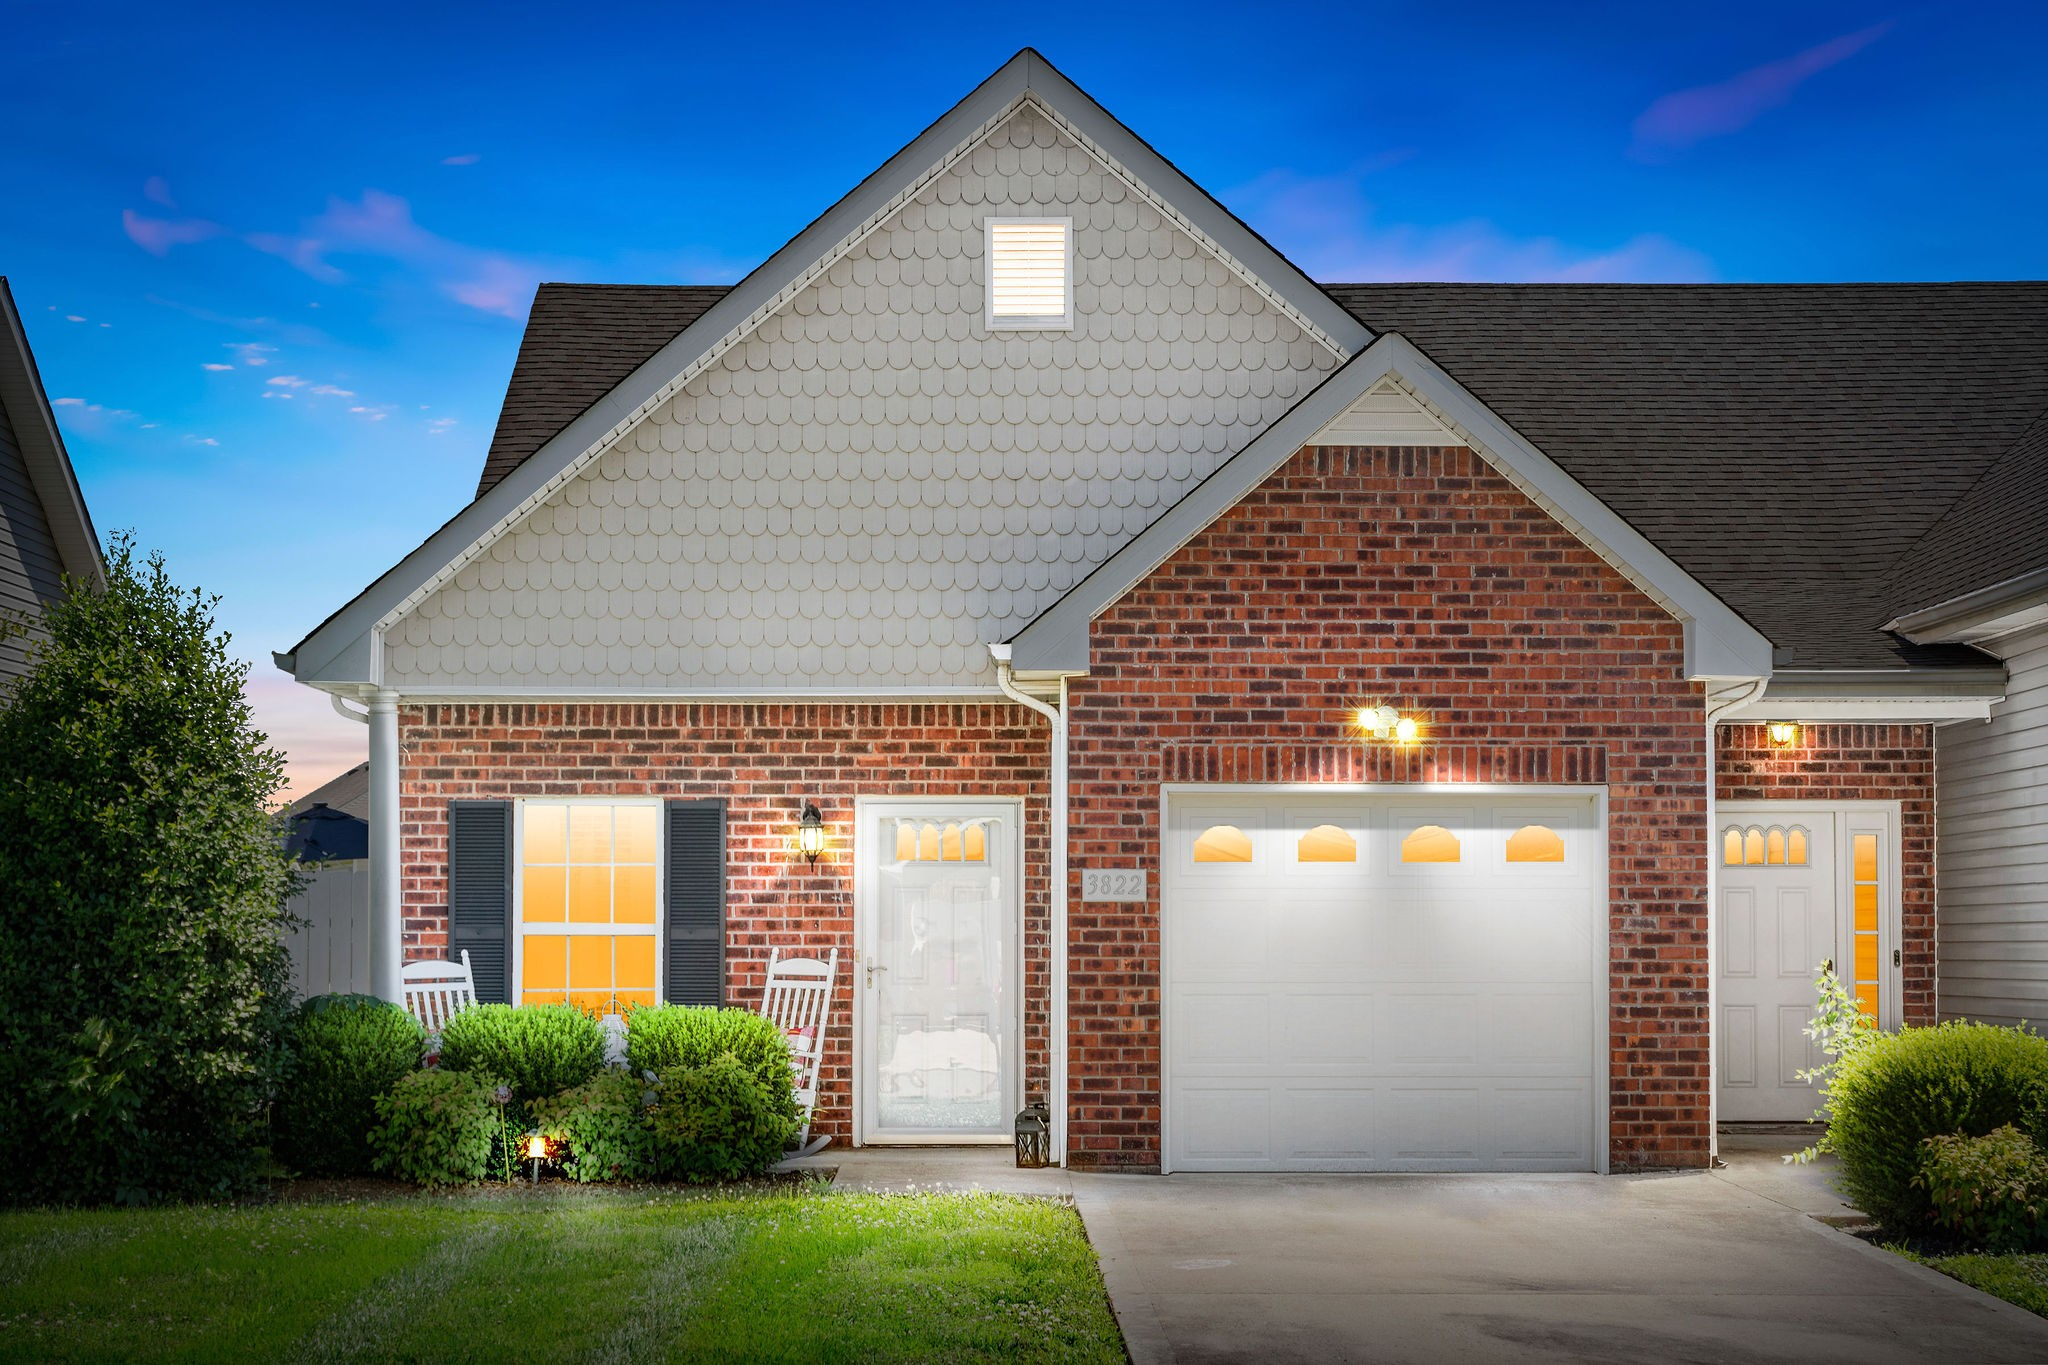 Welcome Home! 2 Bedrooms & 2 Bathrooms - 1 Car Garage - Master with Jetted Tub & Huge Walk in Closet - Granite in Kitchen - Private Patio - Open Green Space - New HVAC in 2020 - Easy Access to Exit 1 off I-24! Great Investment!